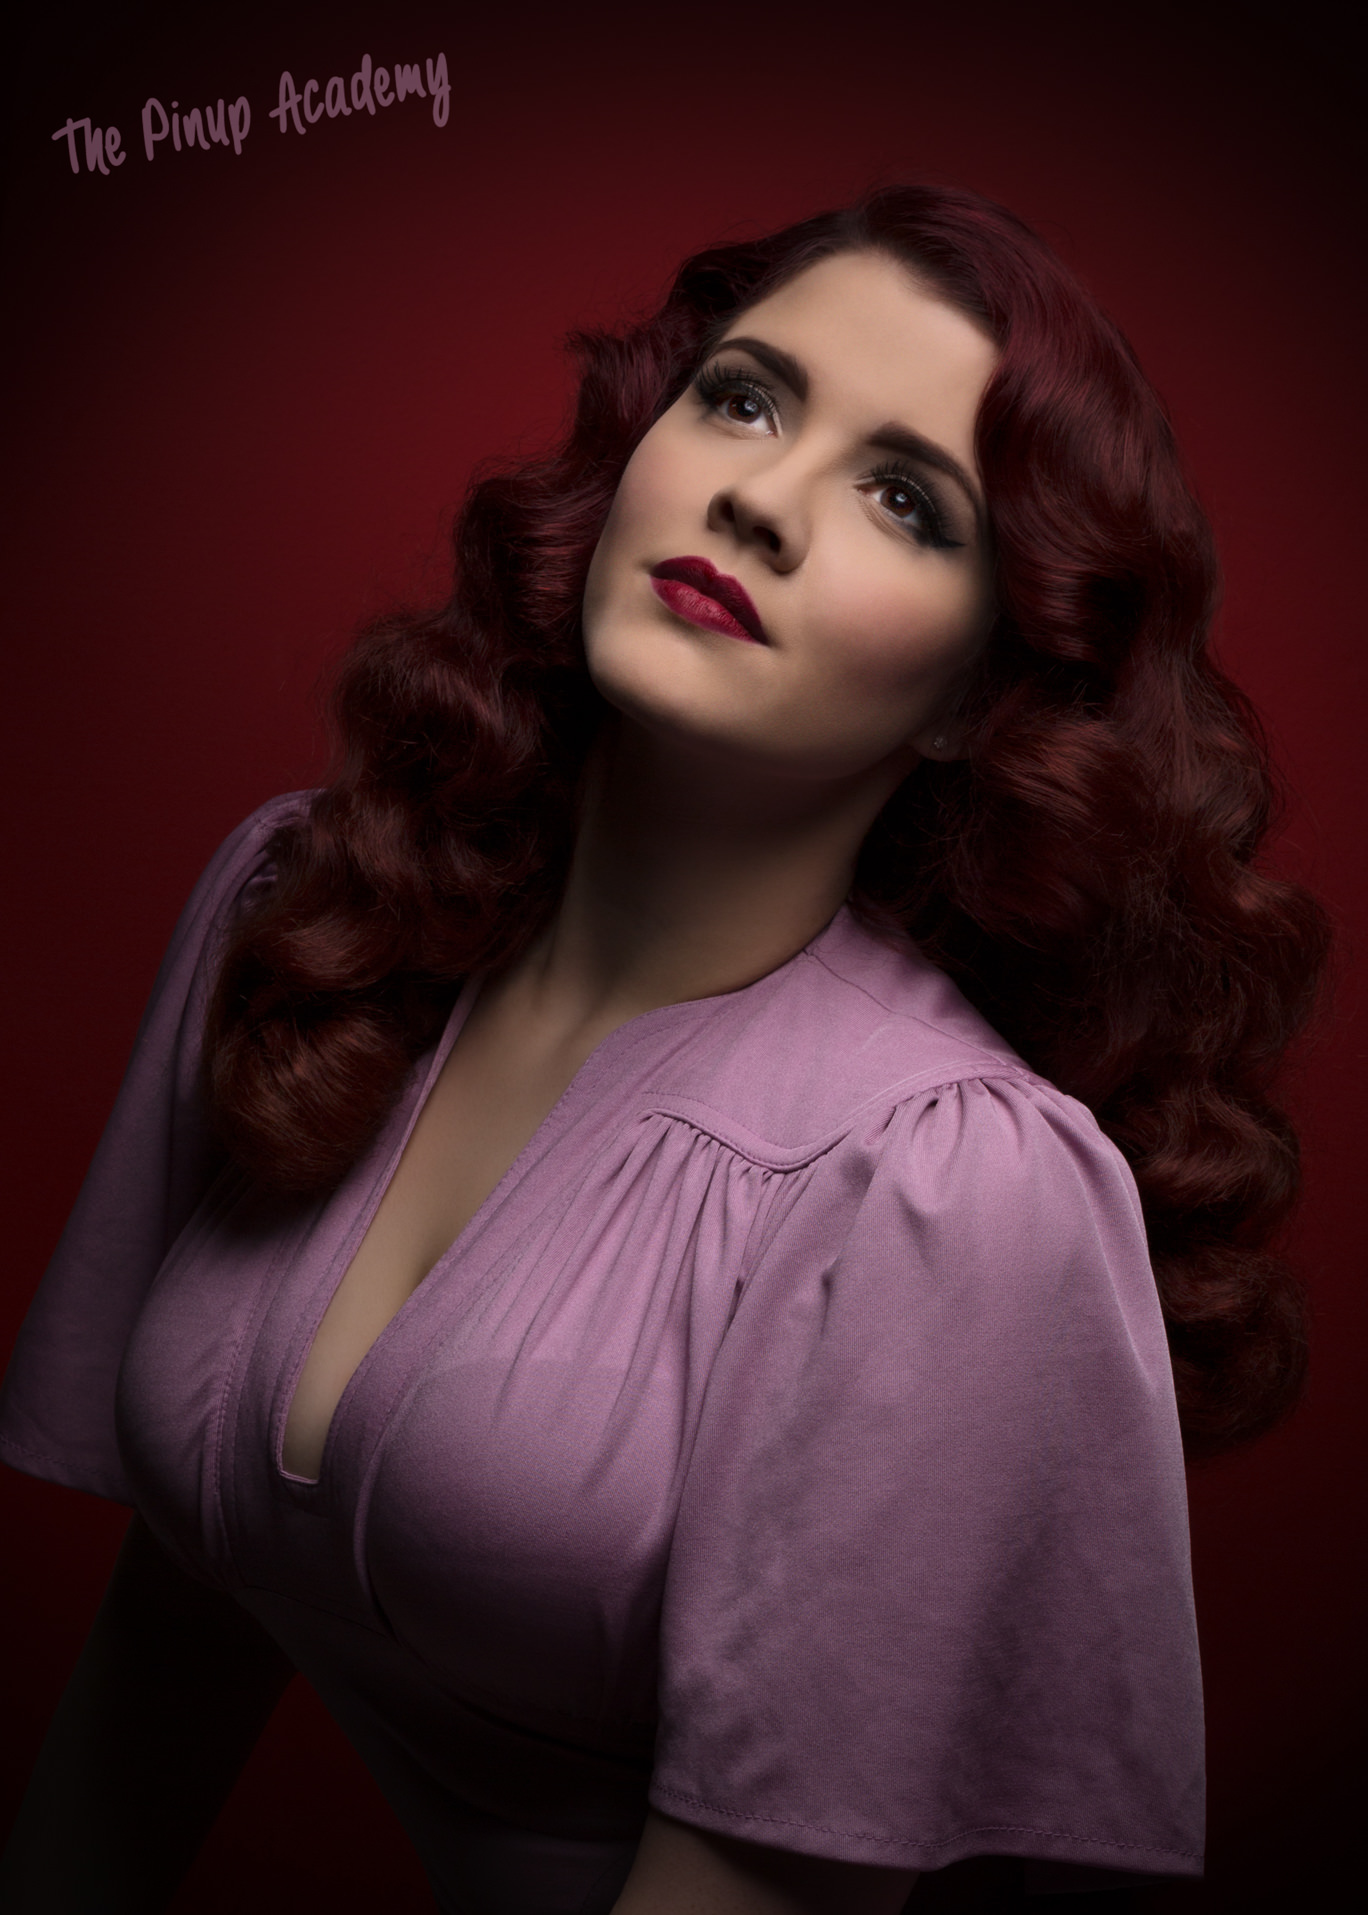 Hollywood glamour traditional pinup